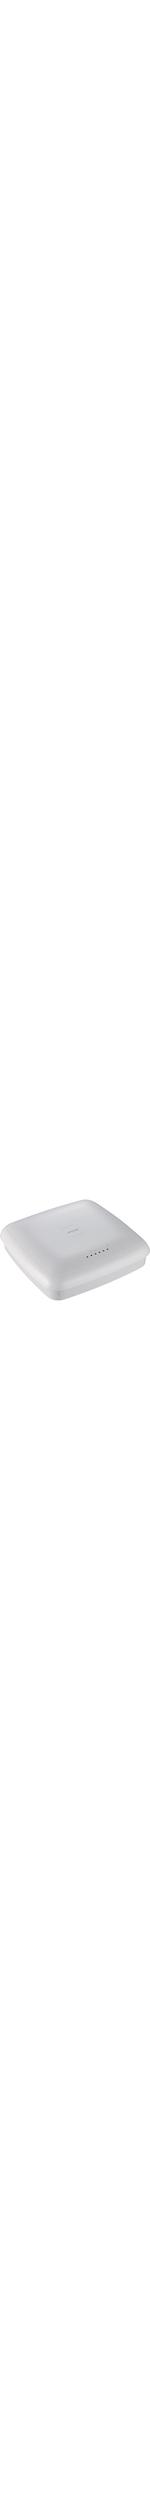 D-Link DWL-3600AP IEEE 802.11n 300 Mbps Wireless Access Point - ISM Band